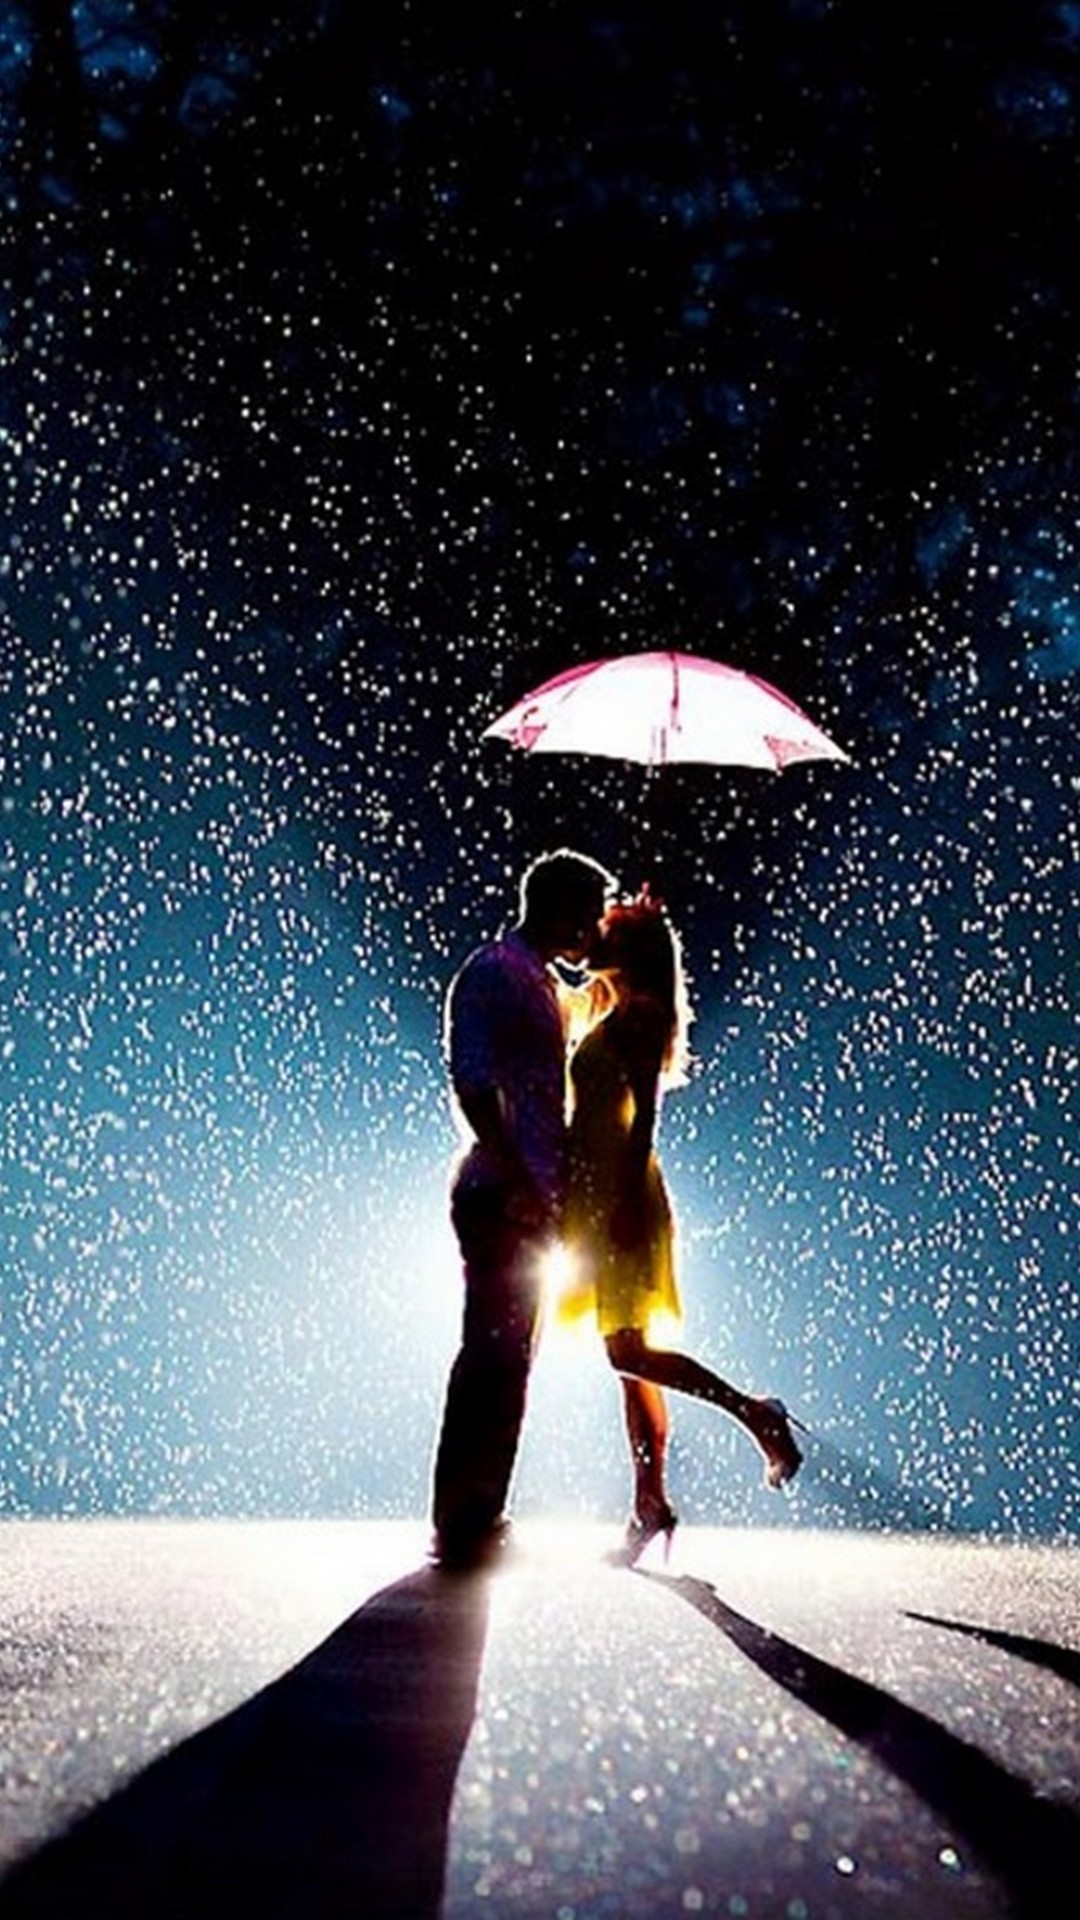 Romantic Love Couple in Rain iPhone wallpaper resolution 1080x1920